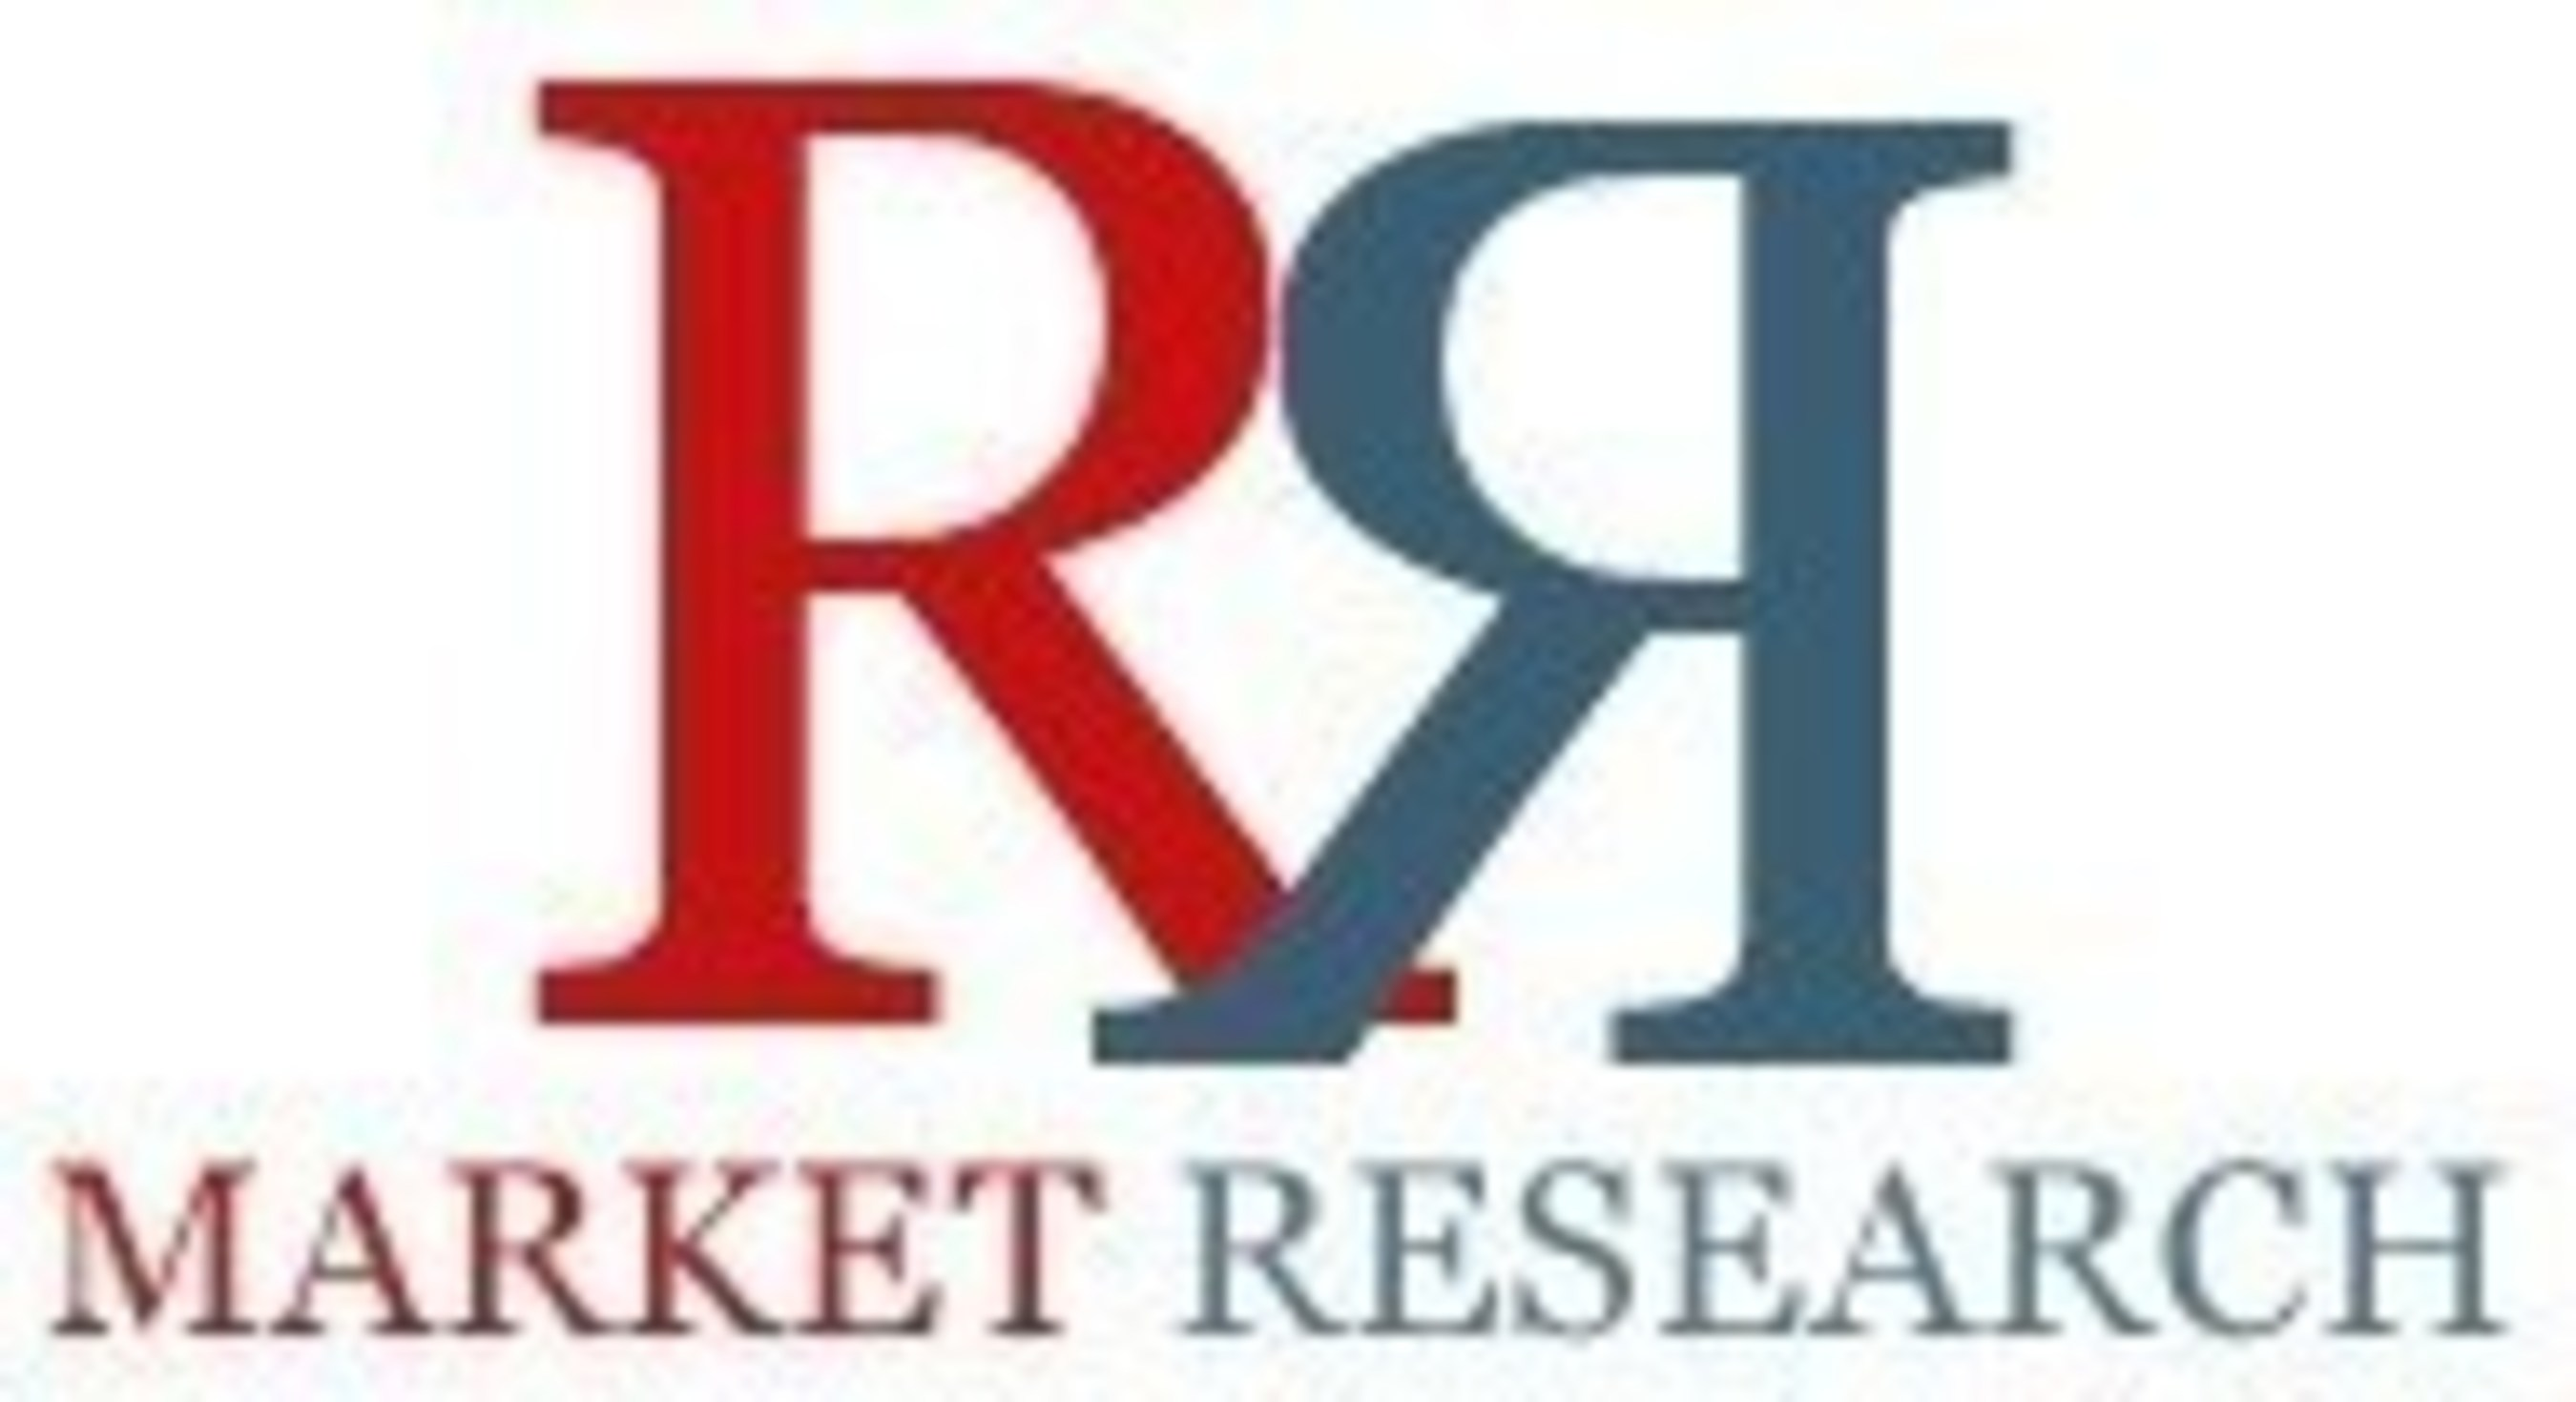 Augmented Reality Industry 2019 Economic Impact, Product Specification & Company Profile for Global and Chinese Market